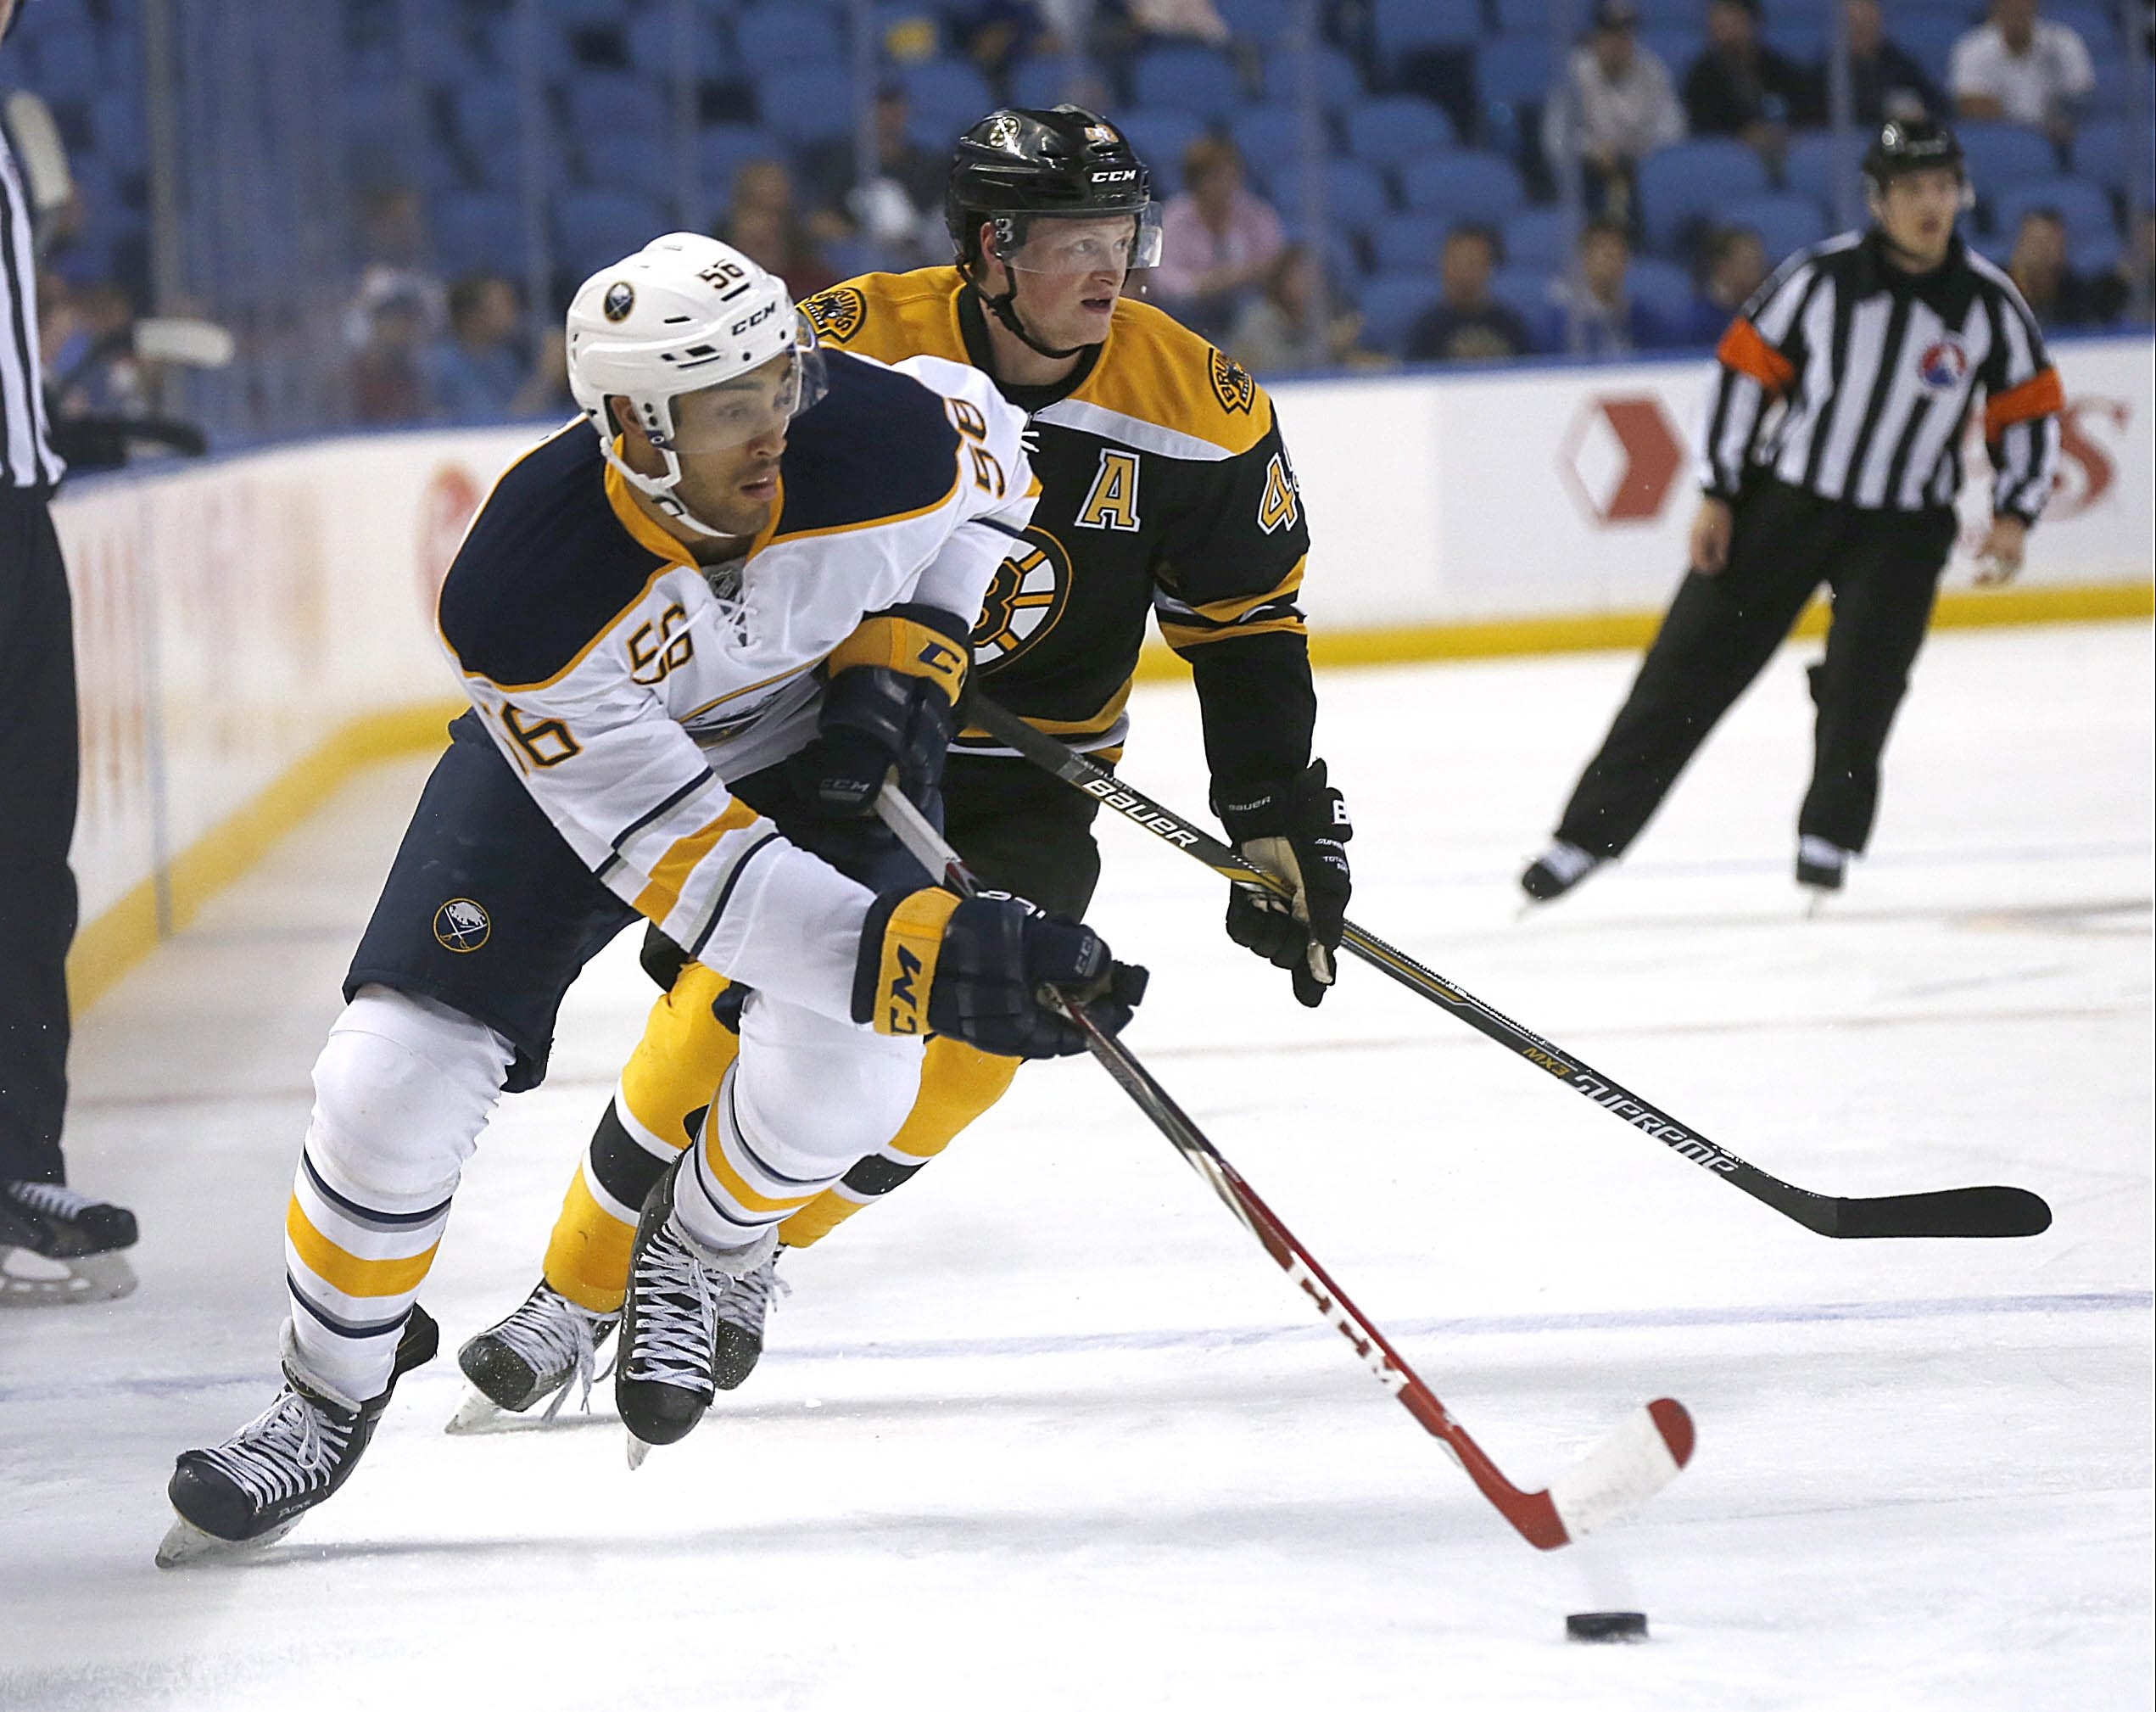 Buffalo's forward prospect Justin Bailey, left, gets past Boston's Linus Arnesson at First Niagara Center on Sept. 14, 2015.